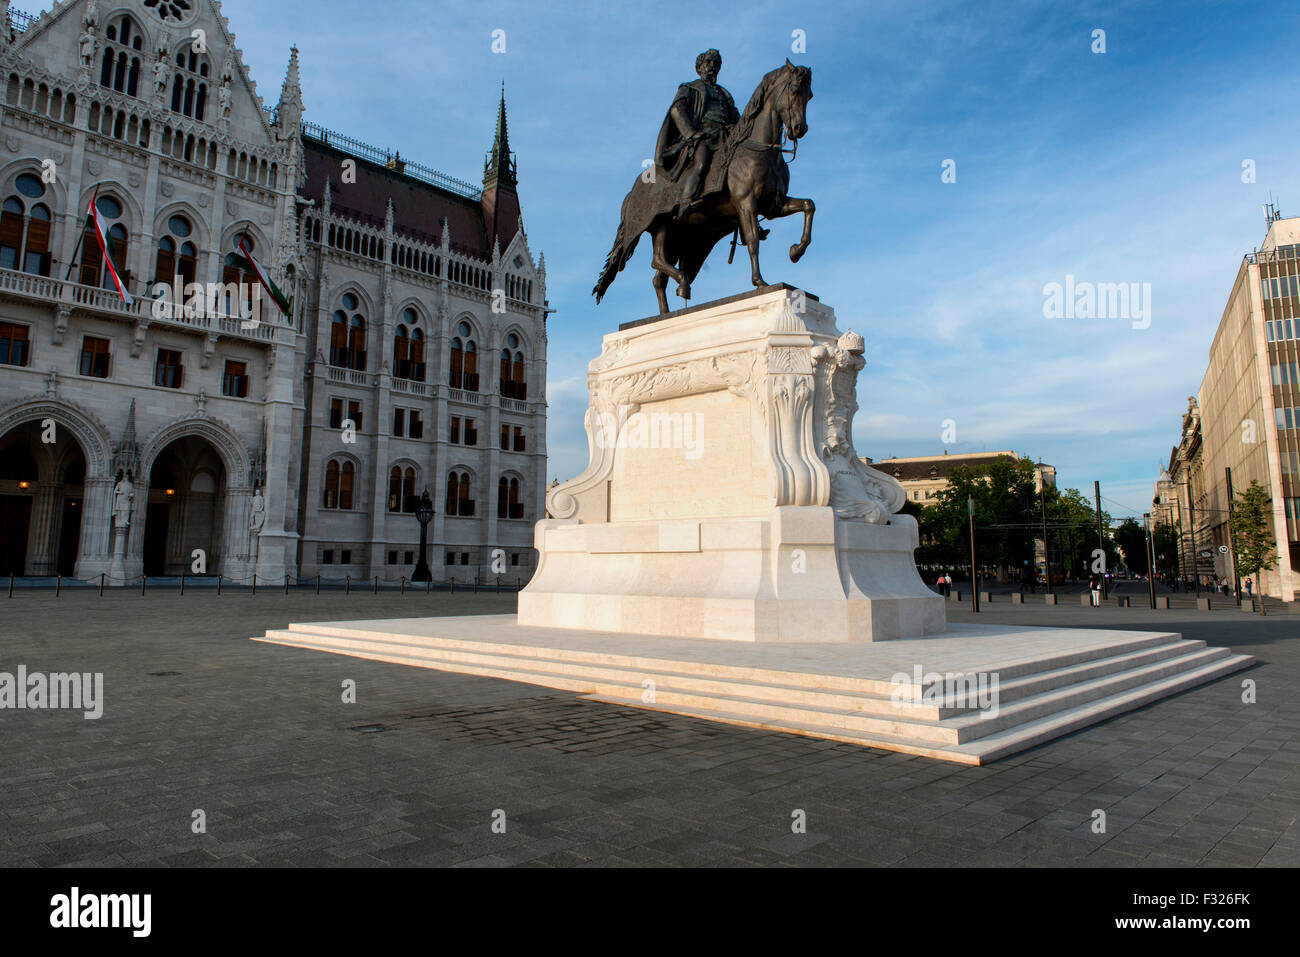 Statue of Count Gyula Andrassy, Parliament Square, Budapest, Hungary - Stock Image